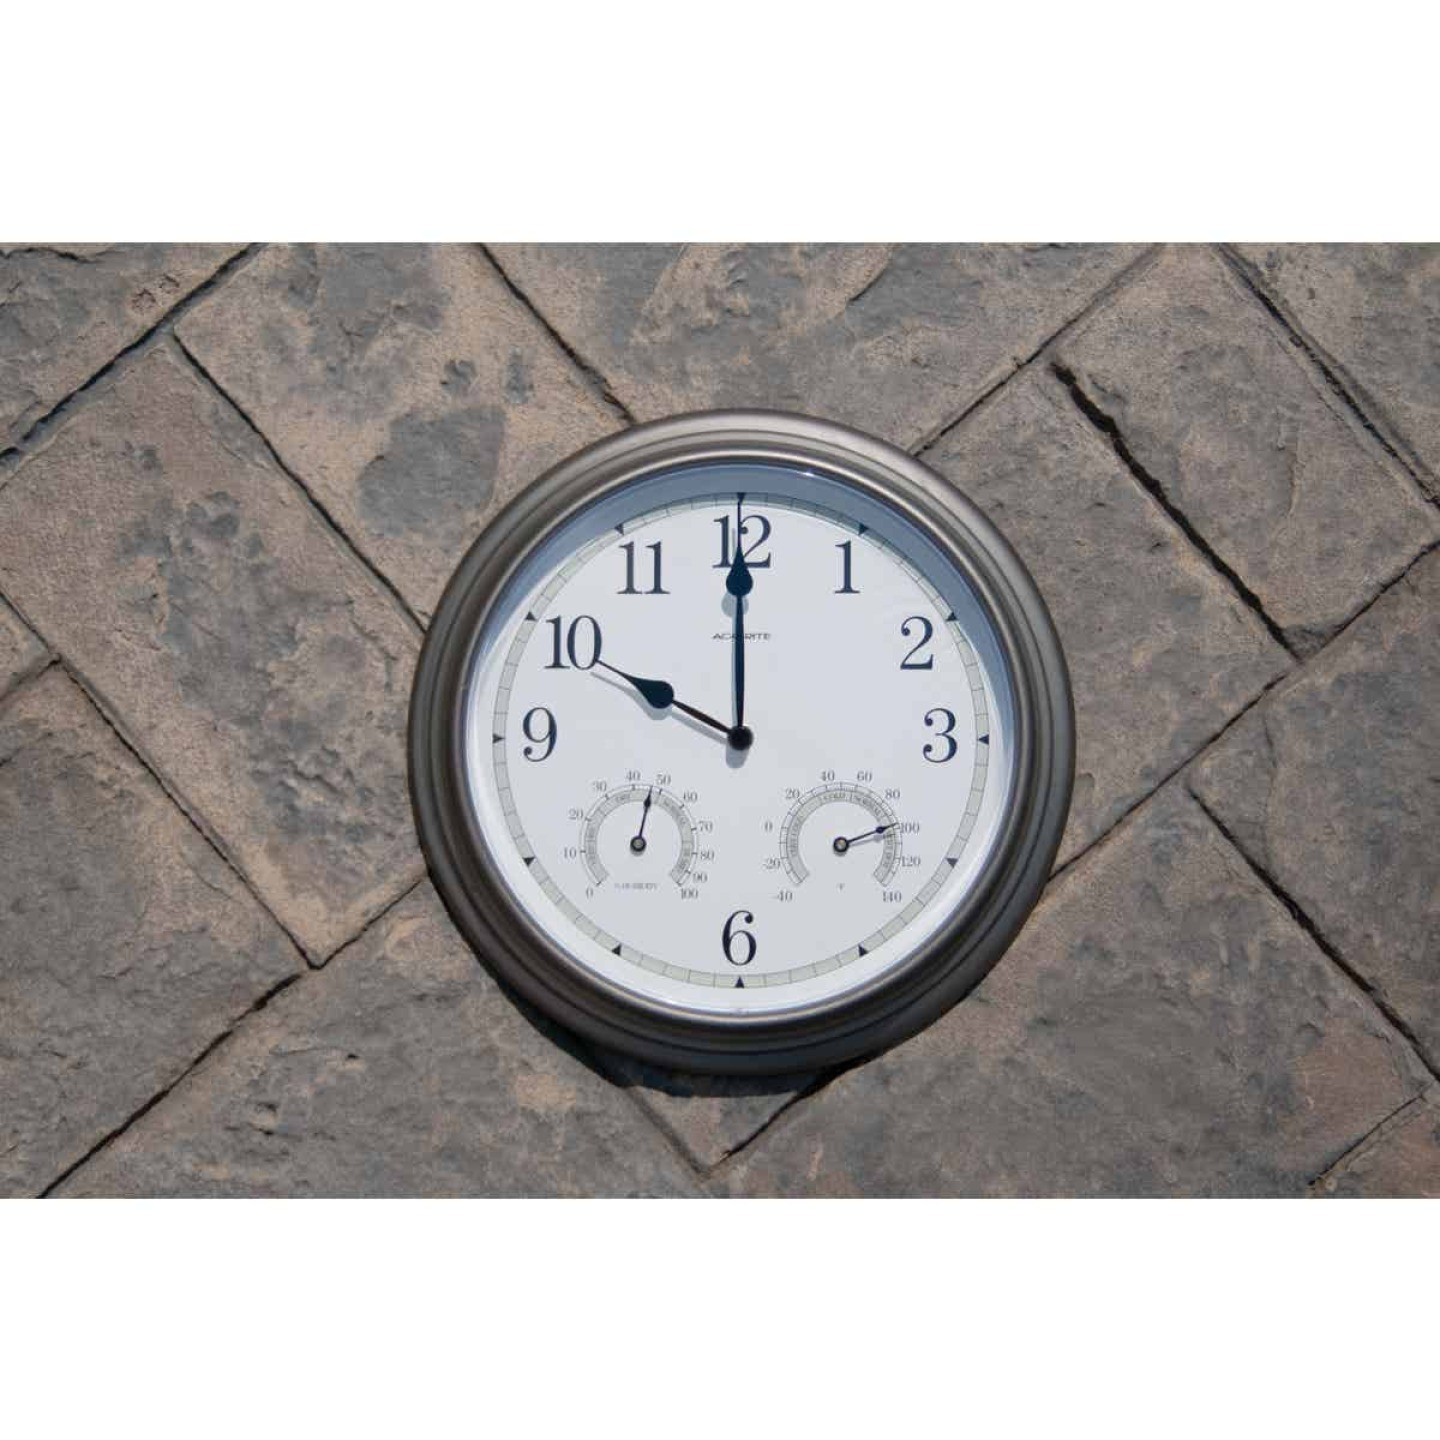 "Acurite 13.5"" Metal Indoor/Outdoor Clock Thermometer Image 2"